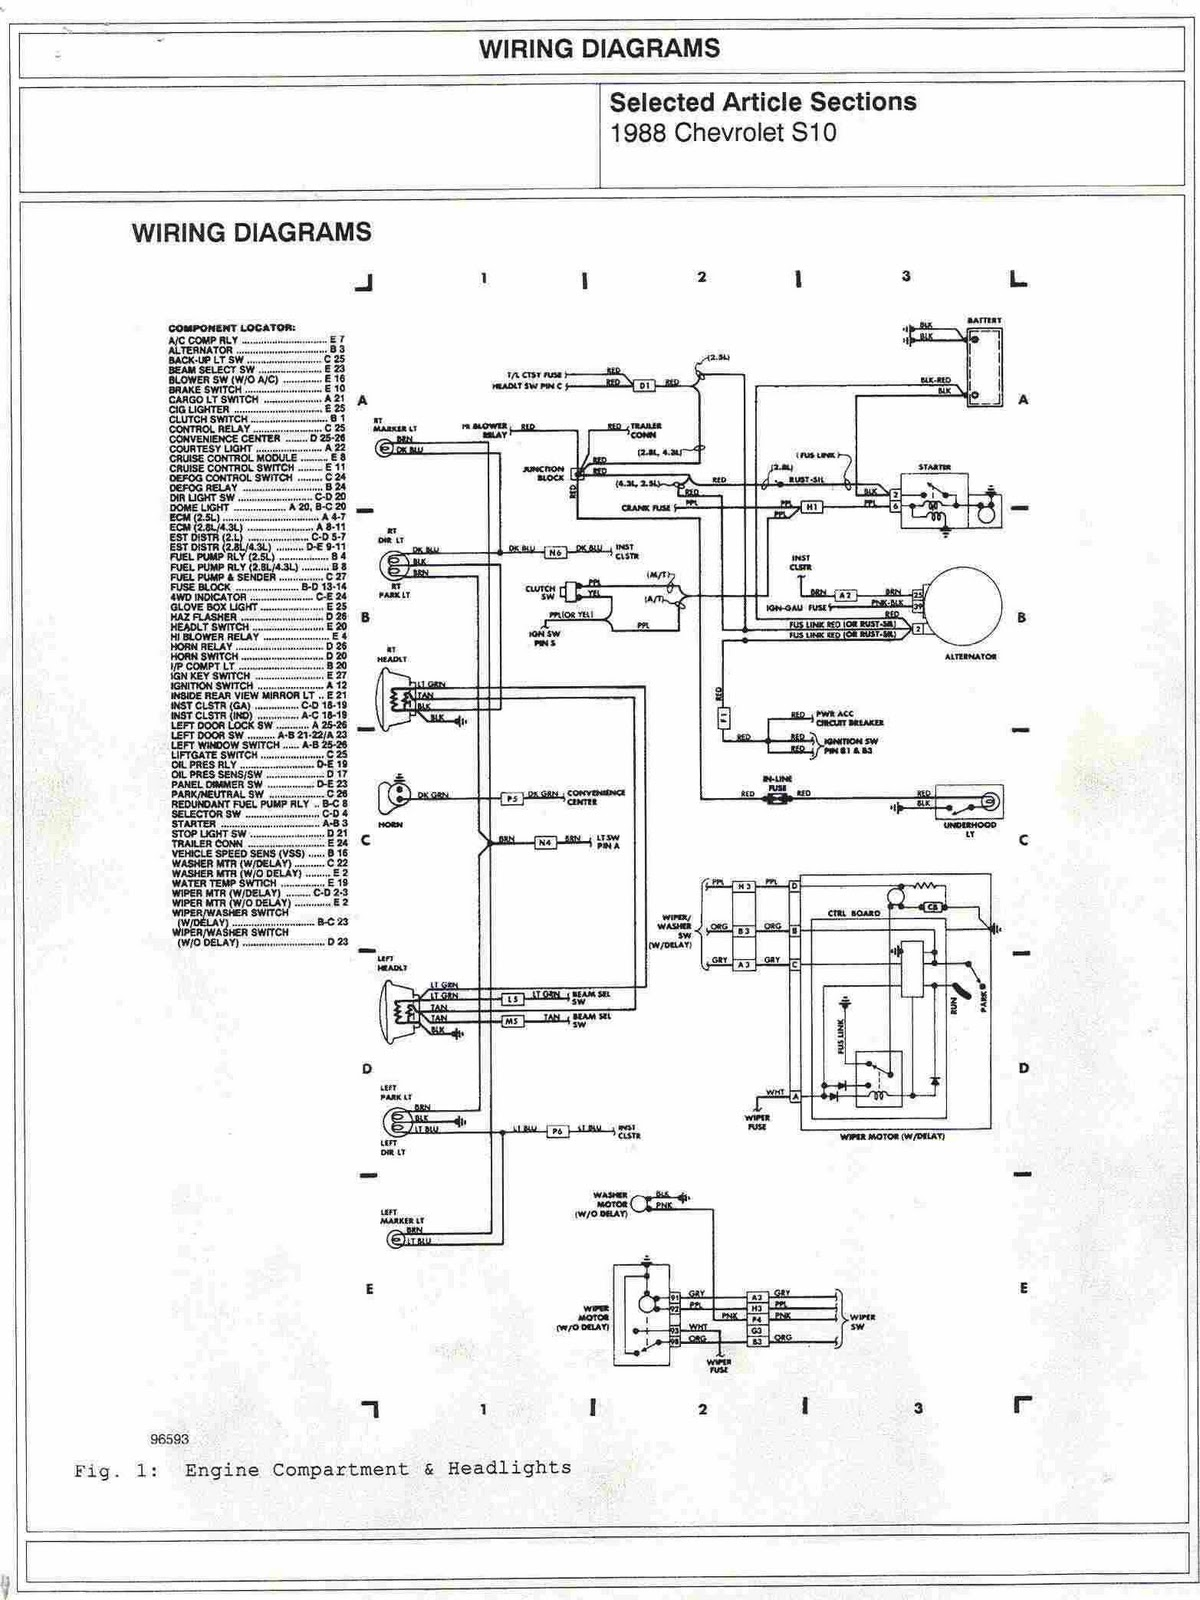 1988+Chevrolet+S10+Engine+Compartment+and+Headlights+Wiring+Diagrams 95 s10 wiring diagram 95 tahoe wiring diagram \u2022 wiring diagrams 1988 toyota 4runner v6 engine wiring diagram at soozxer.org